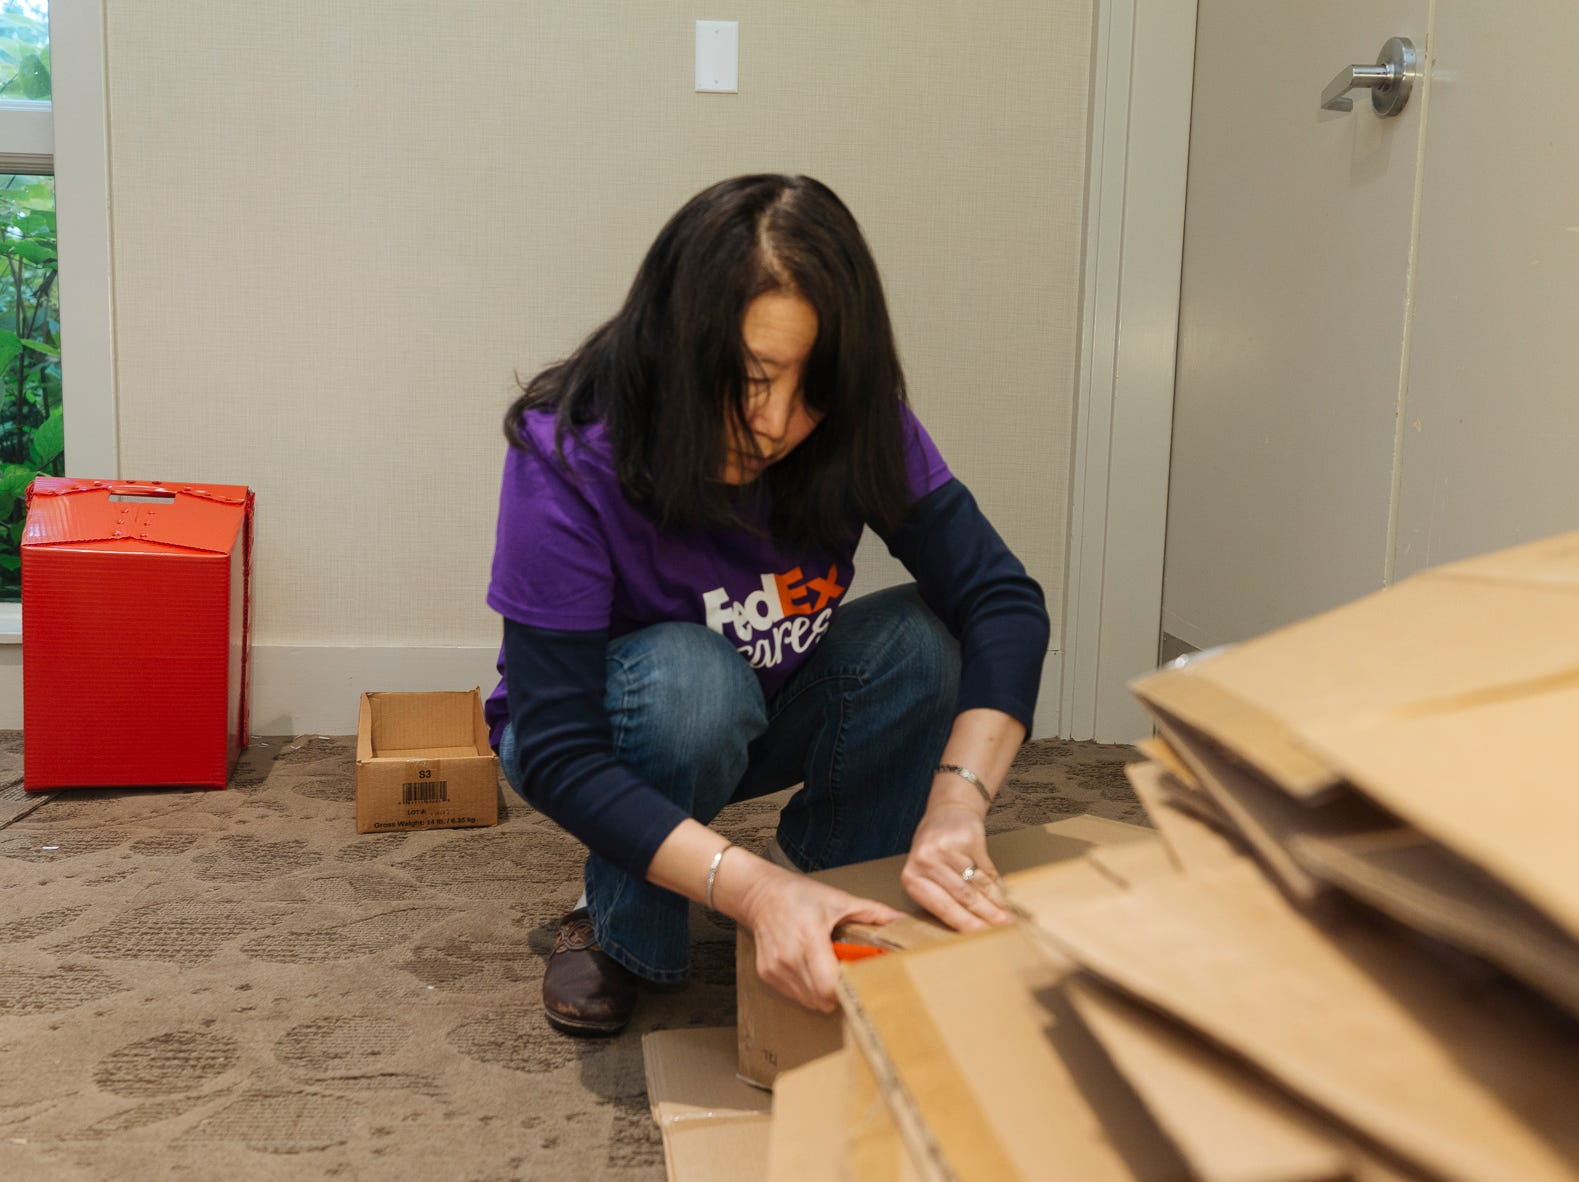 Fan Shen assembles box for fellow FedEx Cares volunteers preparing 3,600 hygiene kits for victims of Hurricanes Florence and Michael.